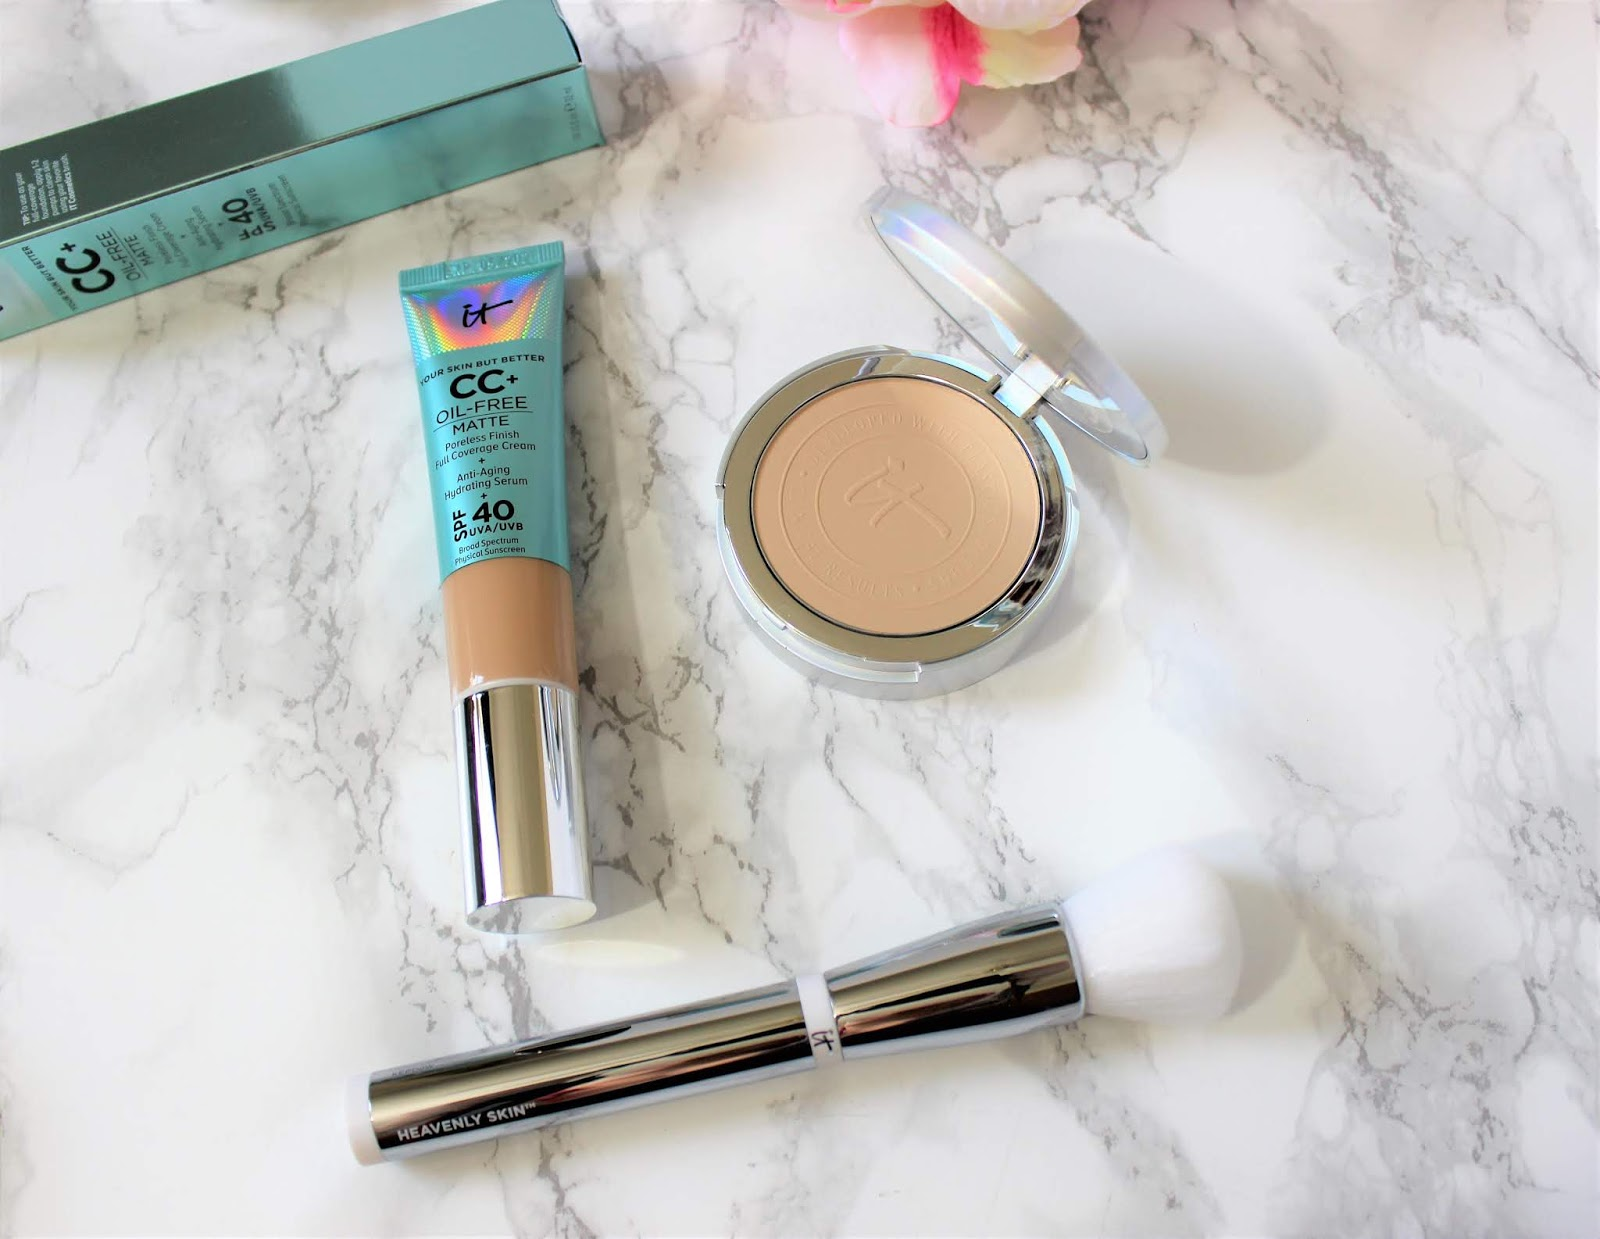 CC+ Your Most Beautiful Skin TSV